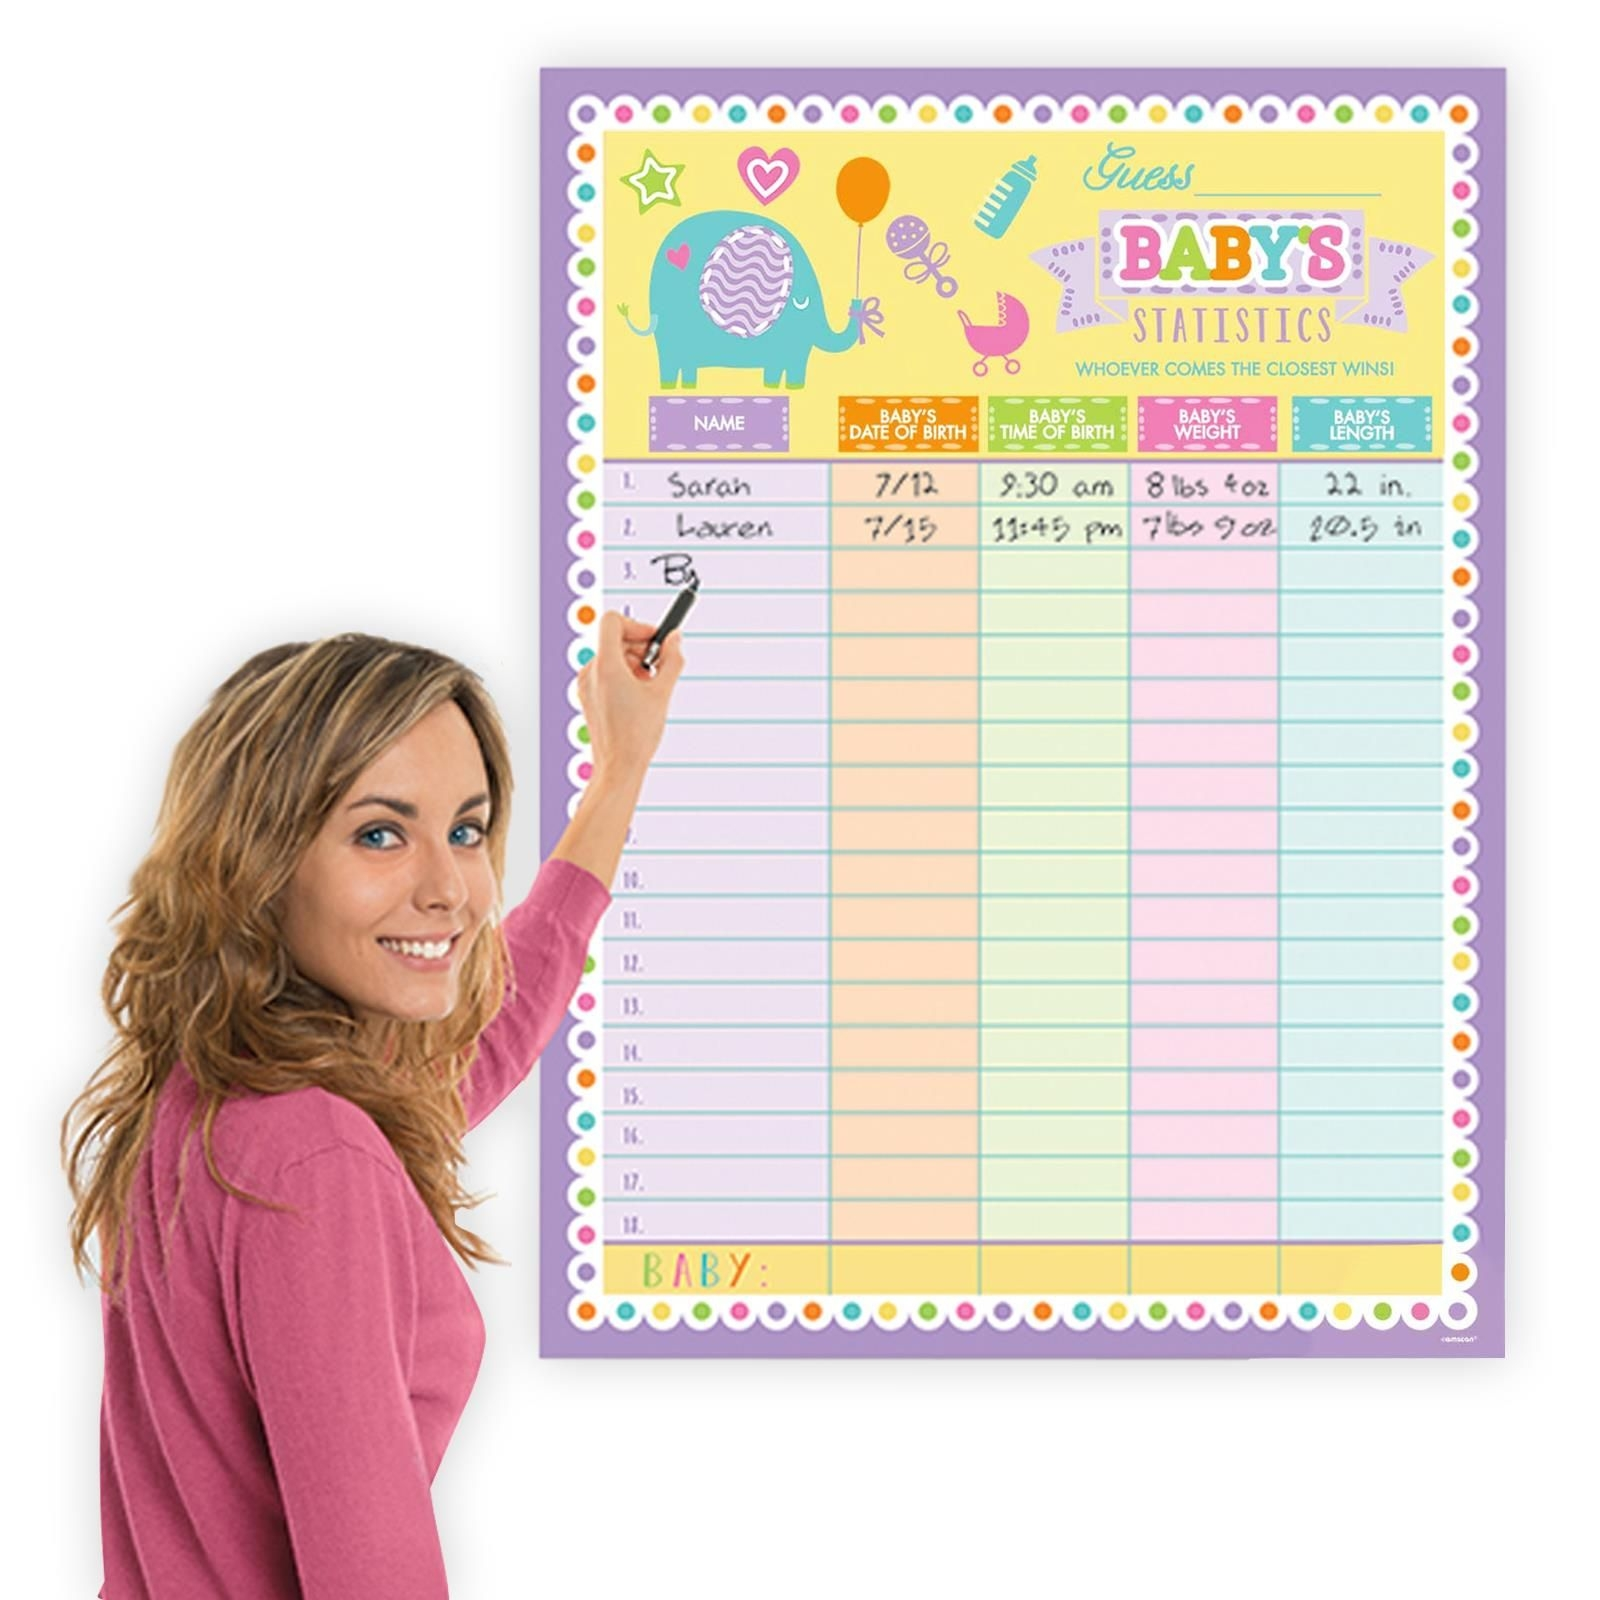 Details About 101Cm Baby Shower Statistics Guessing Game Activity Poster  With Party Tablecloth